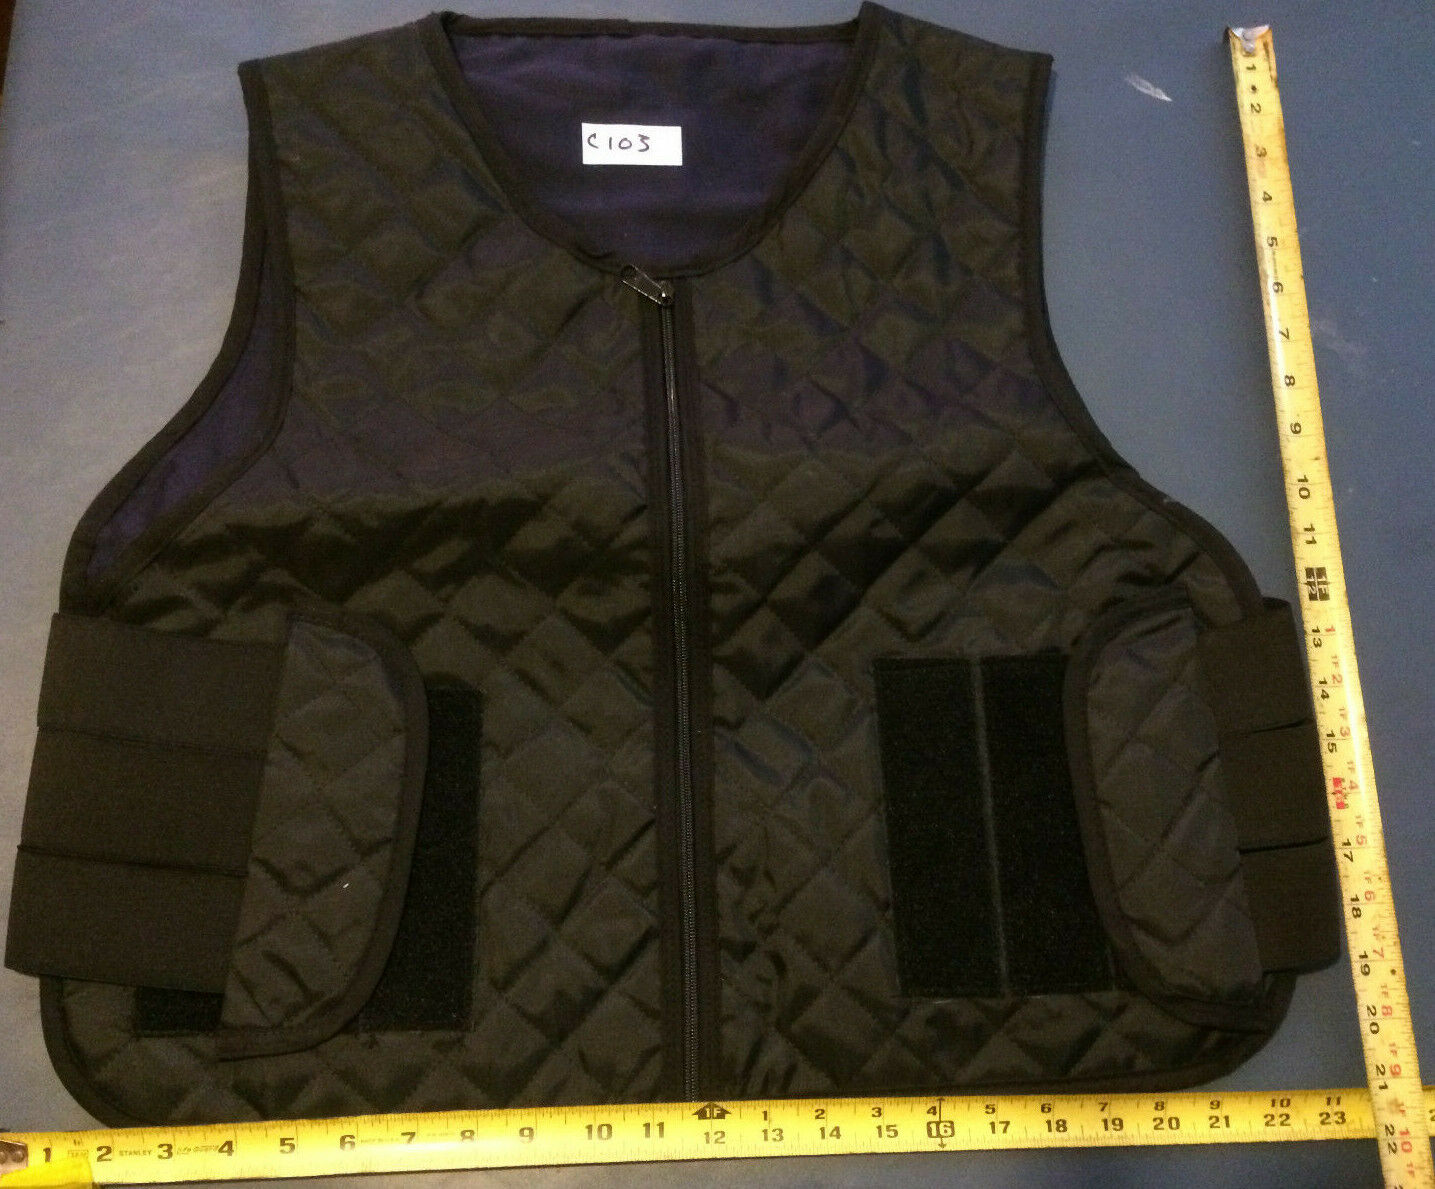 BULLET PROOF VEST CARRIER XLRN   TACTICAL CONCEALABLE  C103  all goods are specials